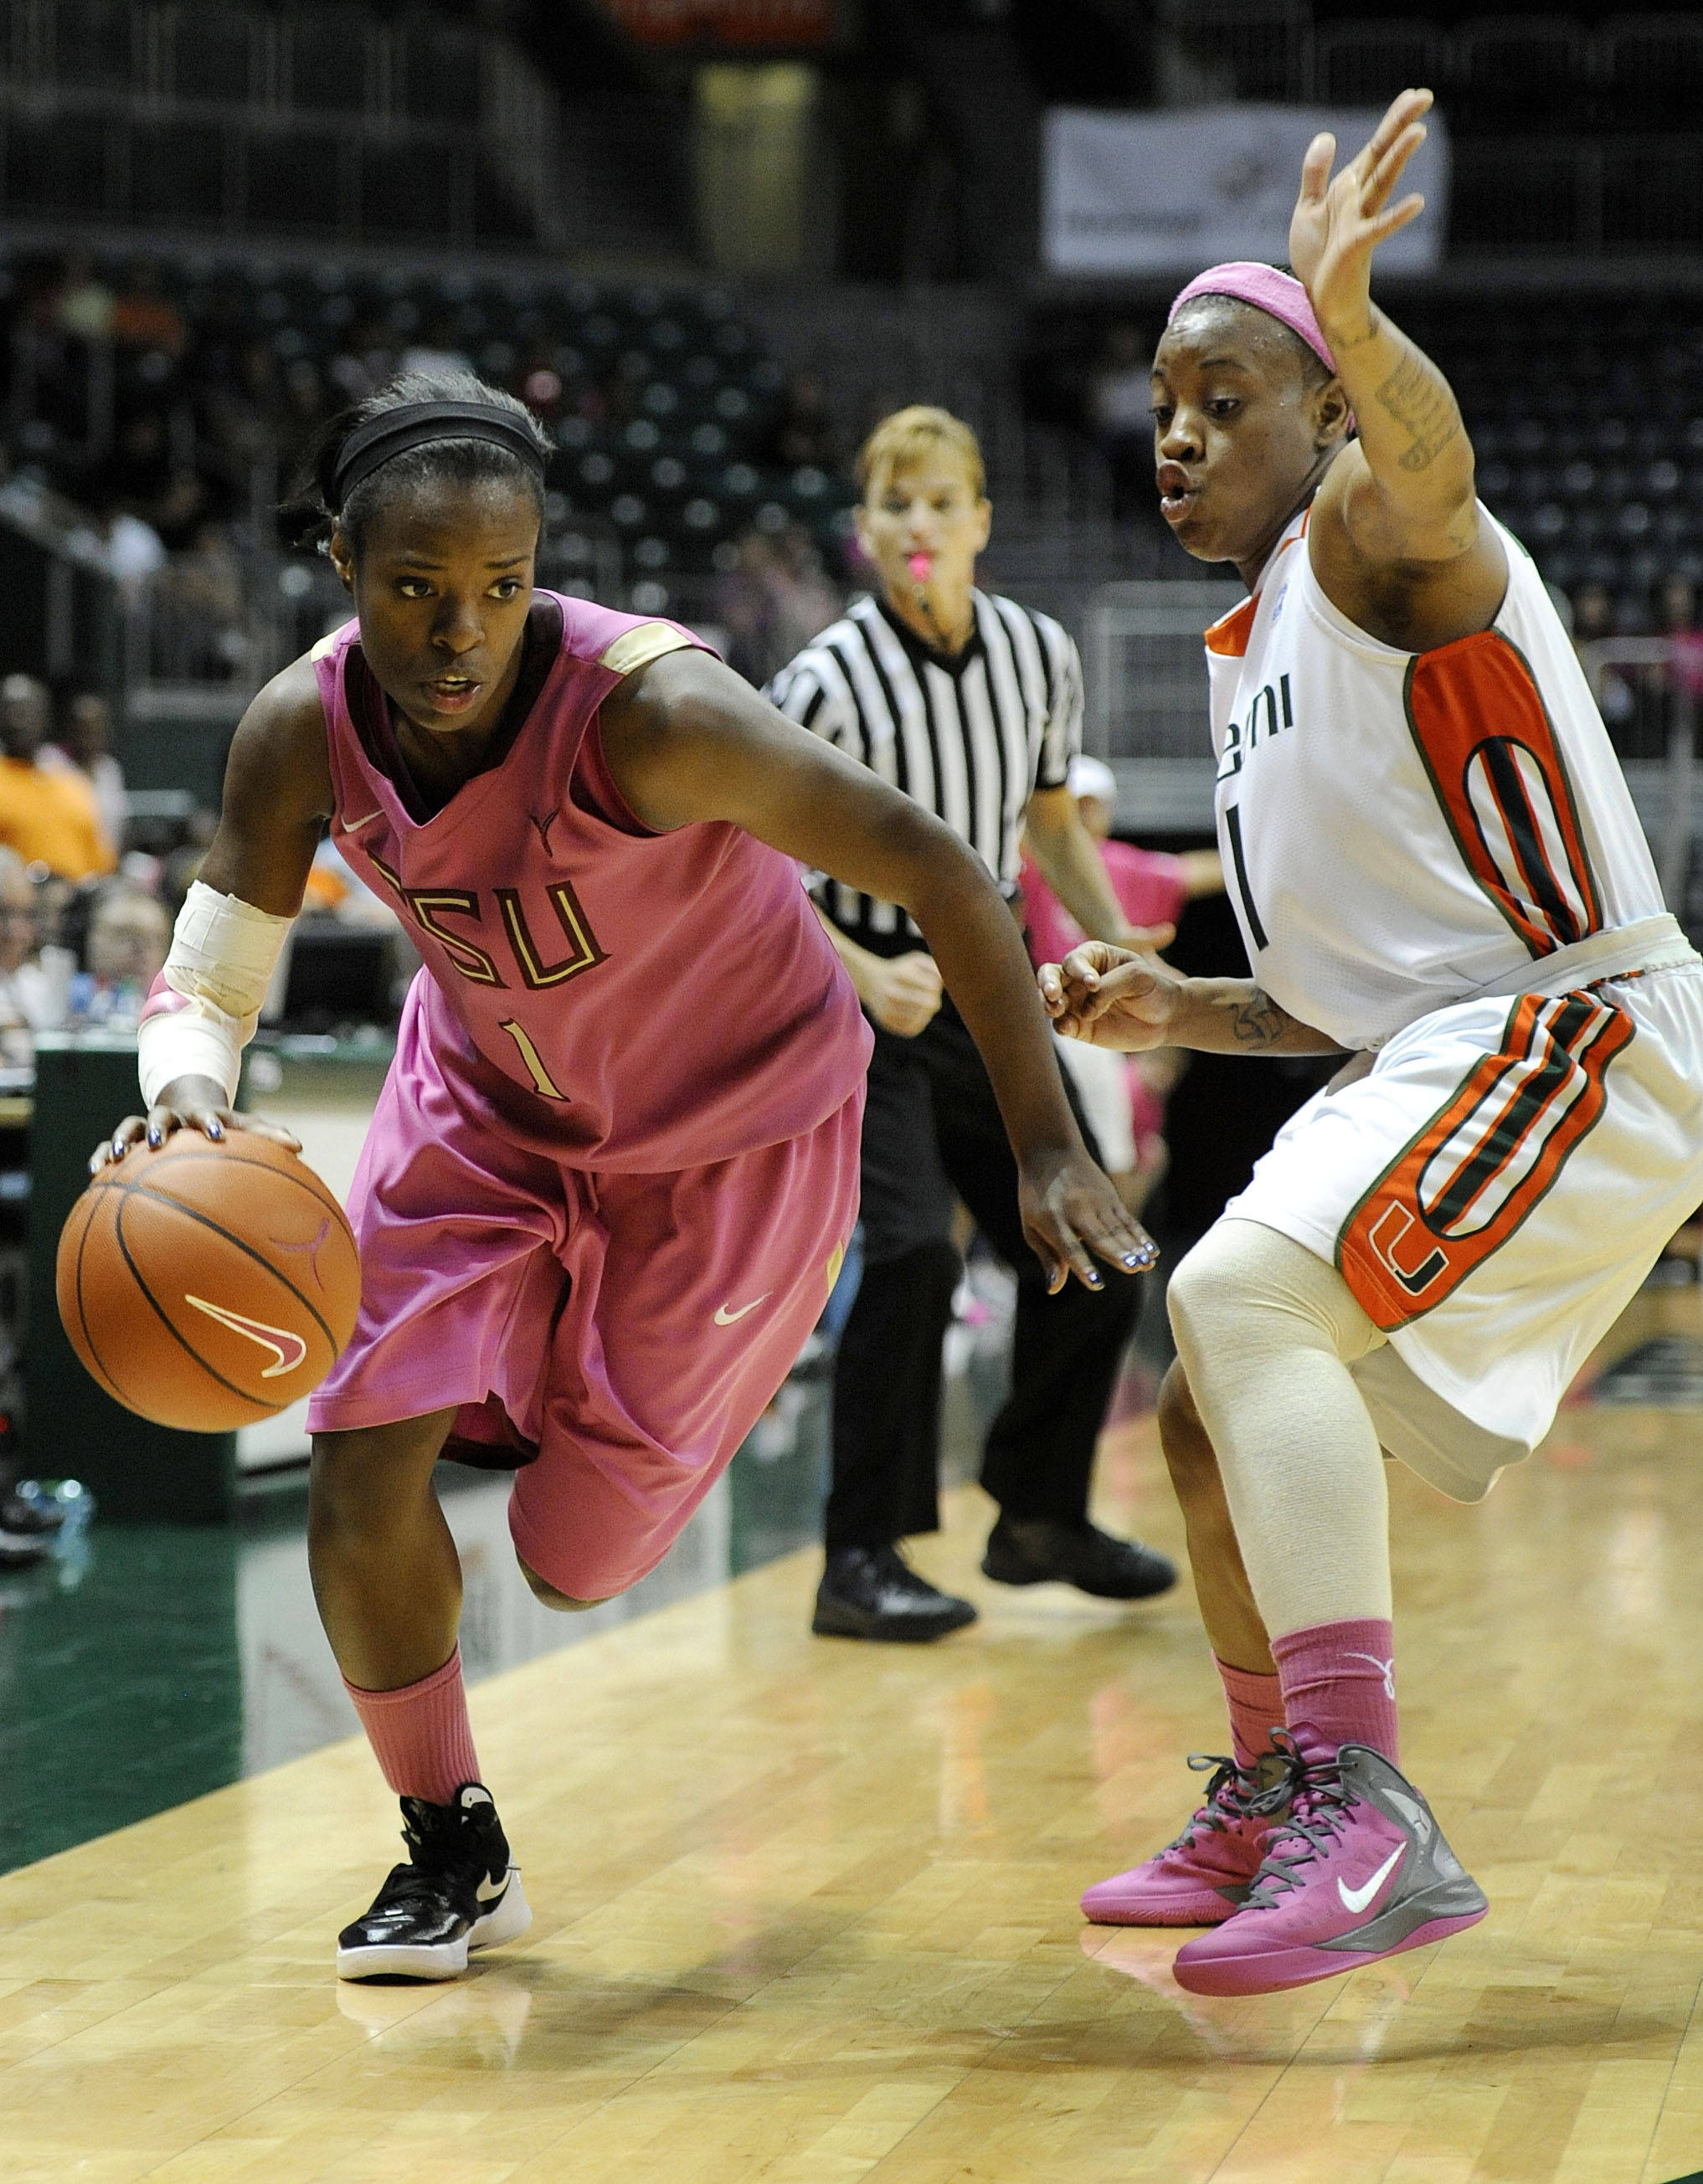 Florida State's Morgan Toles, left, drives the ball past Miami's Riquna Williams, right, during the second half of an NCAA college basketball game on Sunday, Feb. 19, 2012, in Coral Gables, Fla. Miami defeated Florida State 67-60. (AP Photo/Rhona Wise)